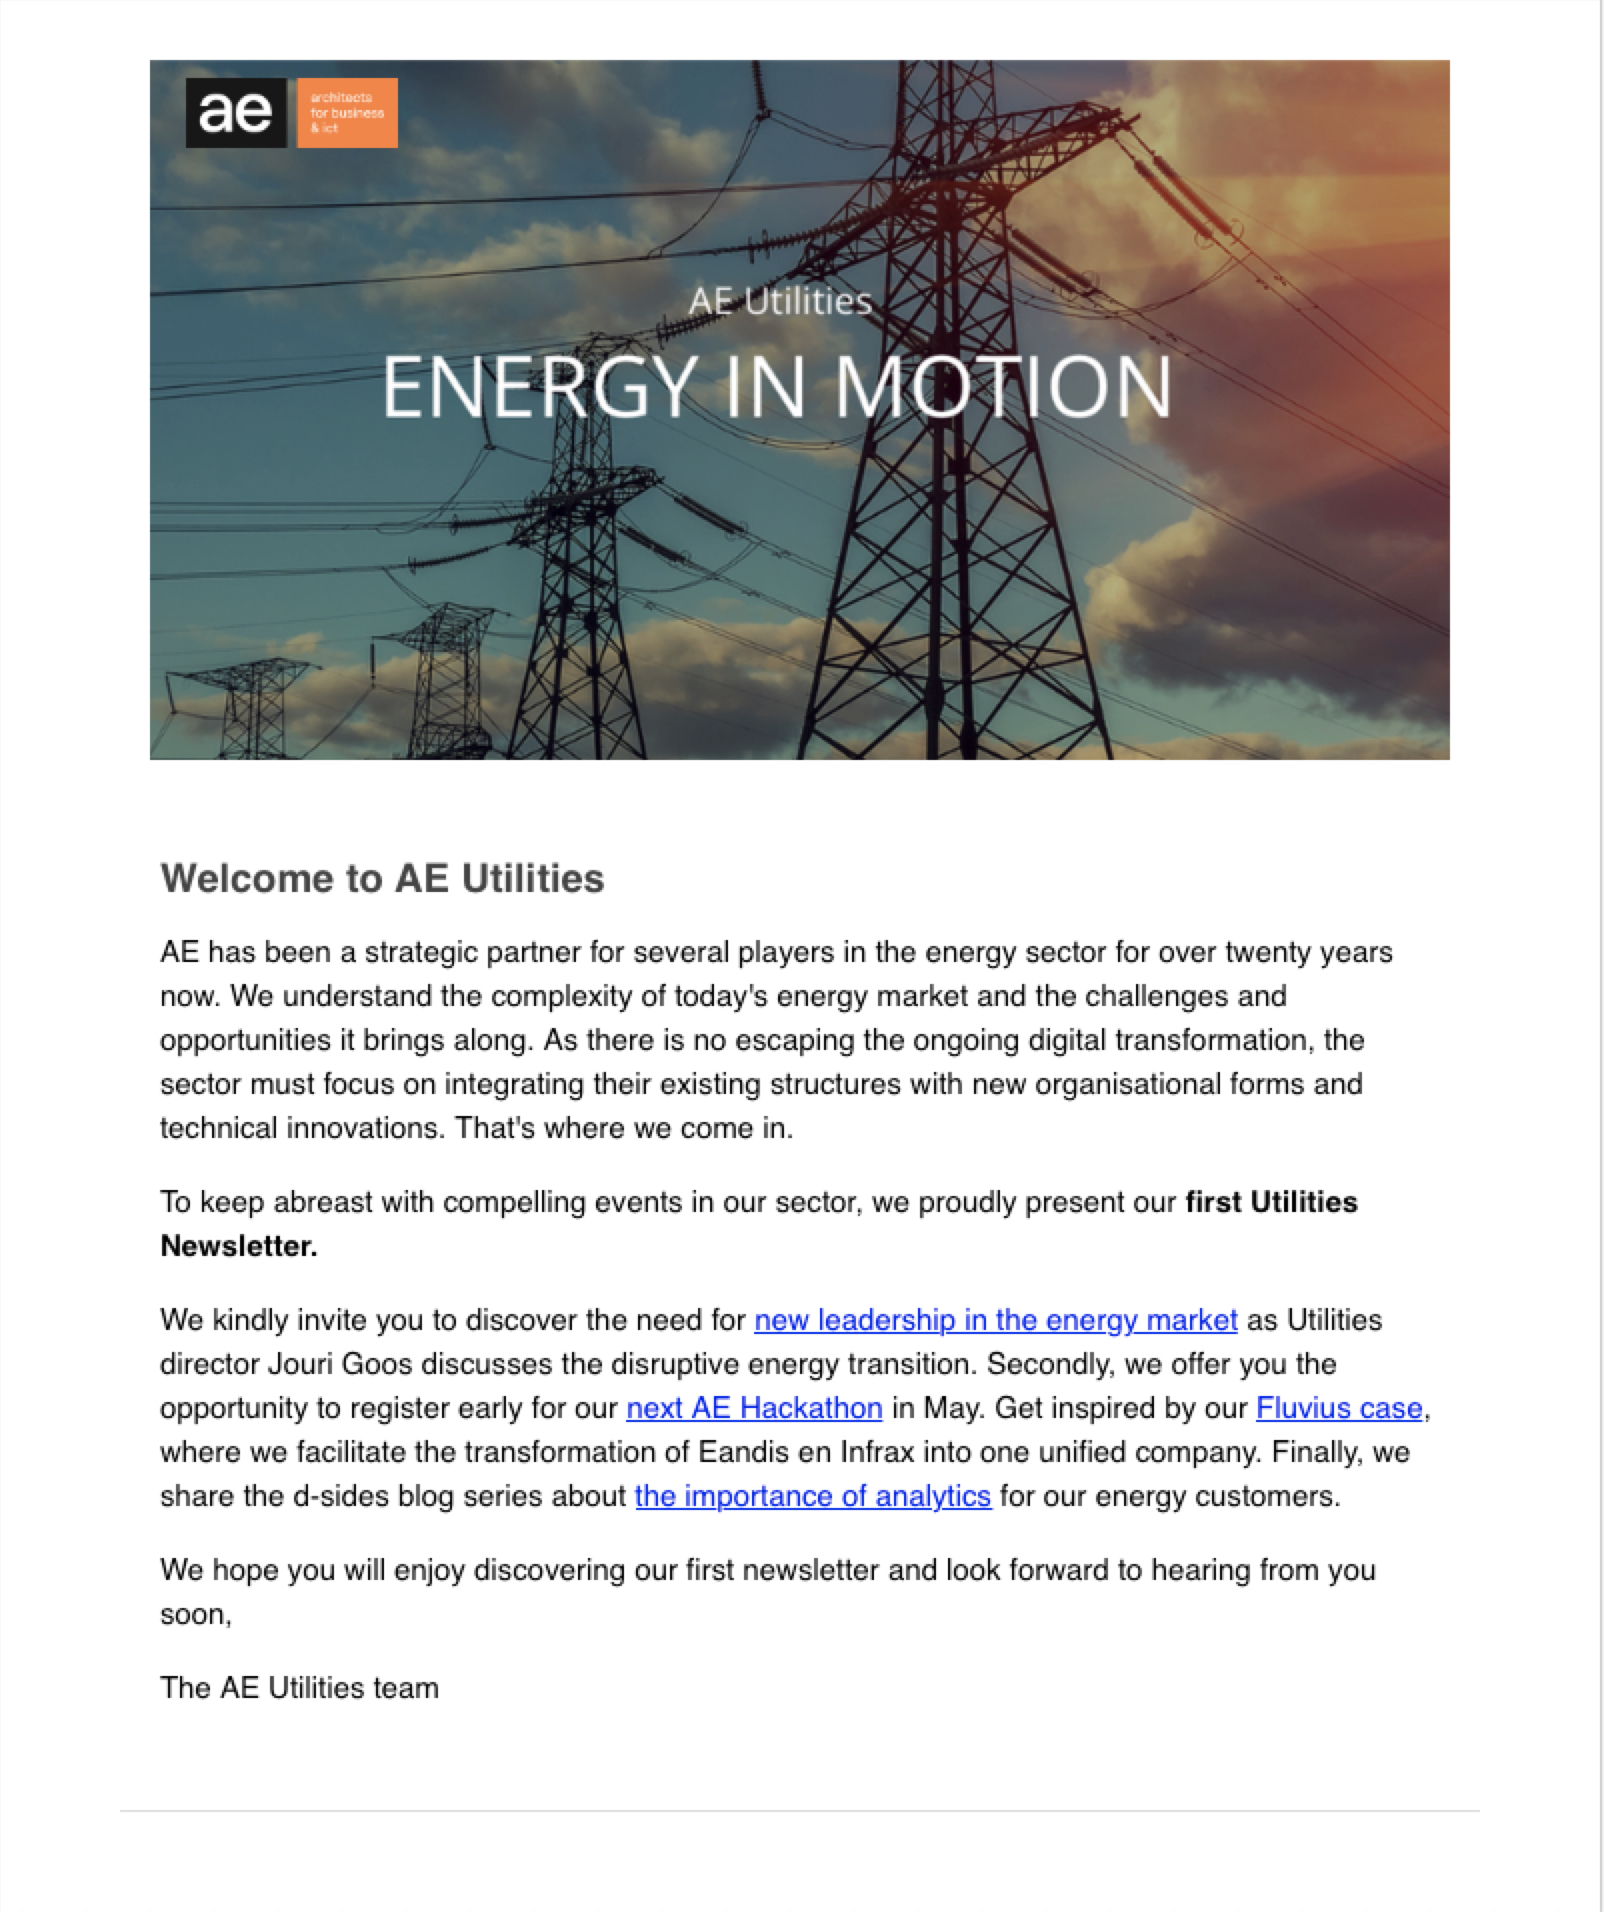 AE Utilities | Our very First Newsletter